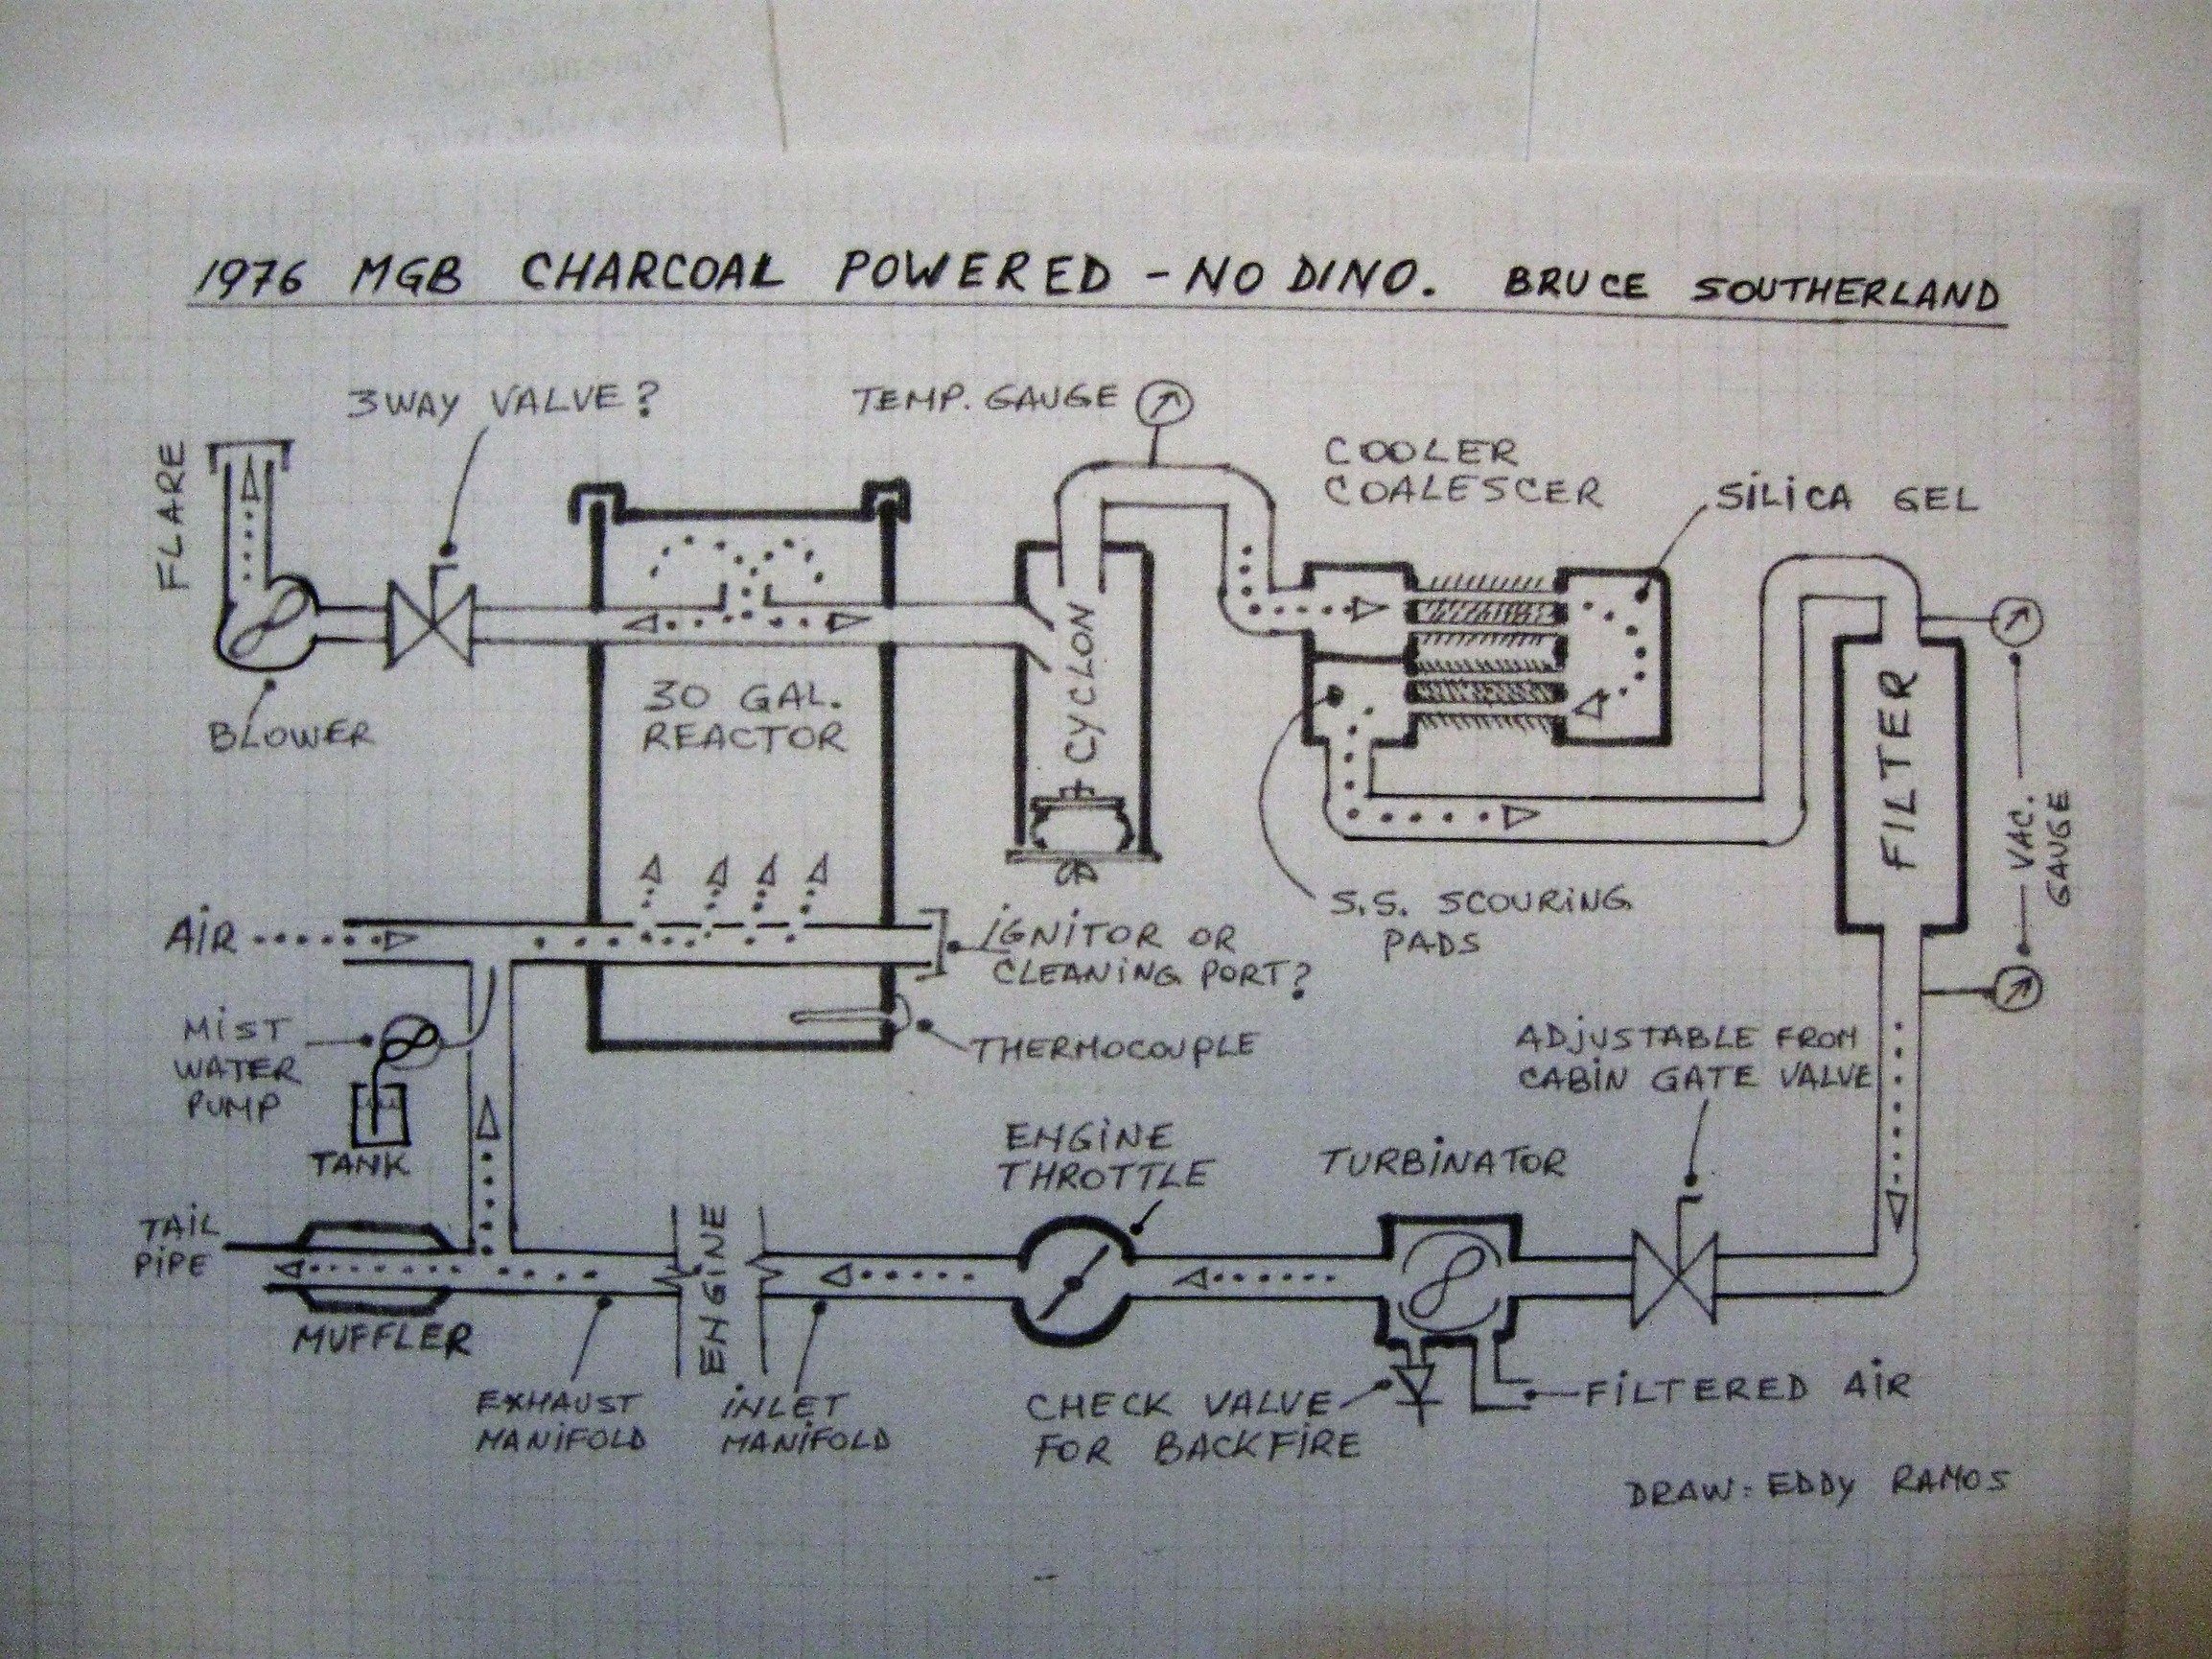 mgb engine diagram wiring library Mg 1976